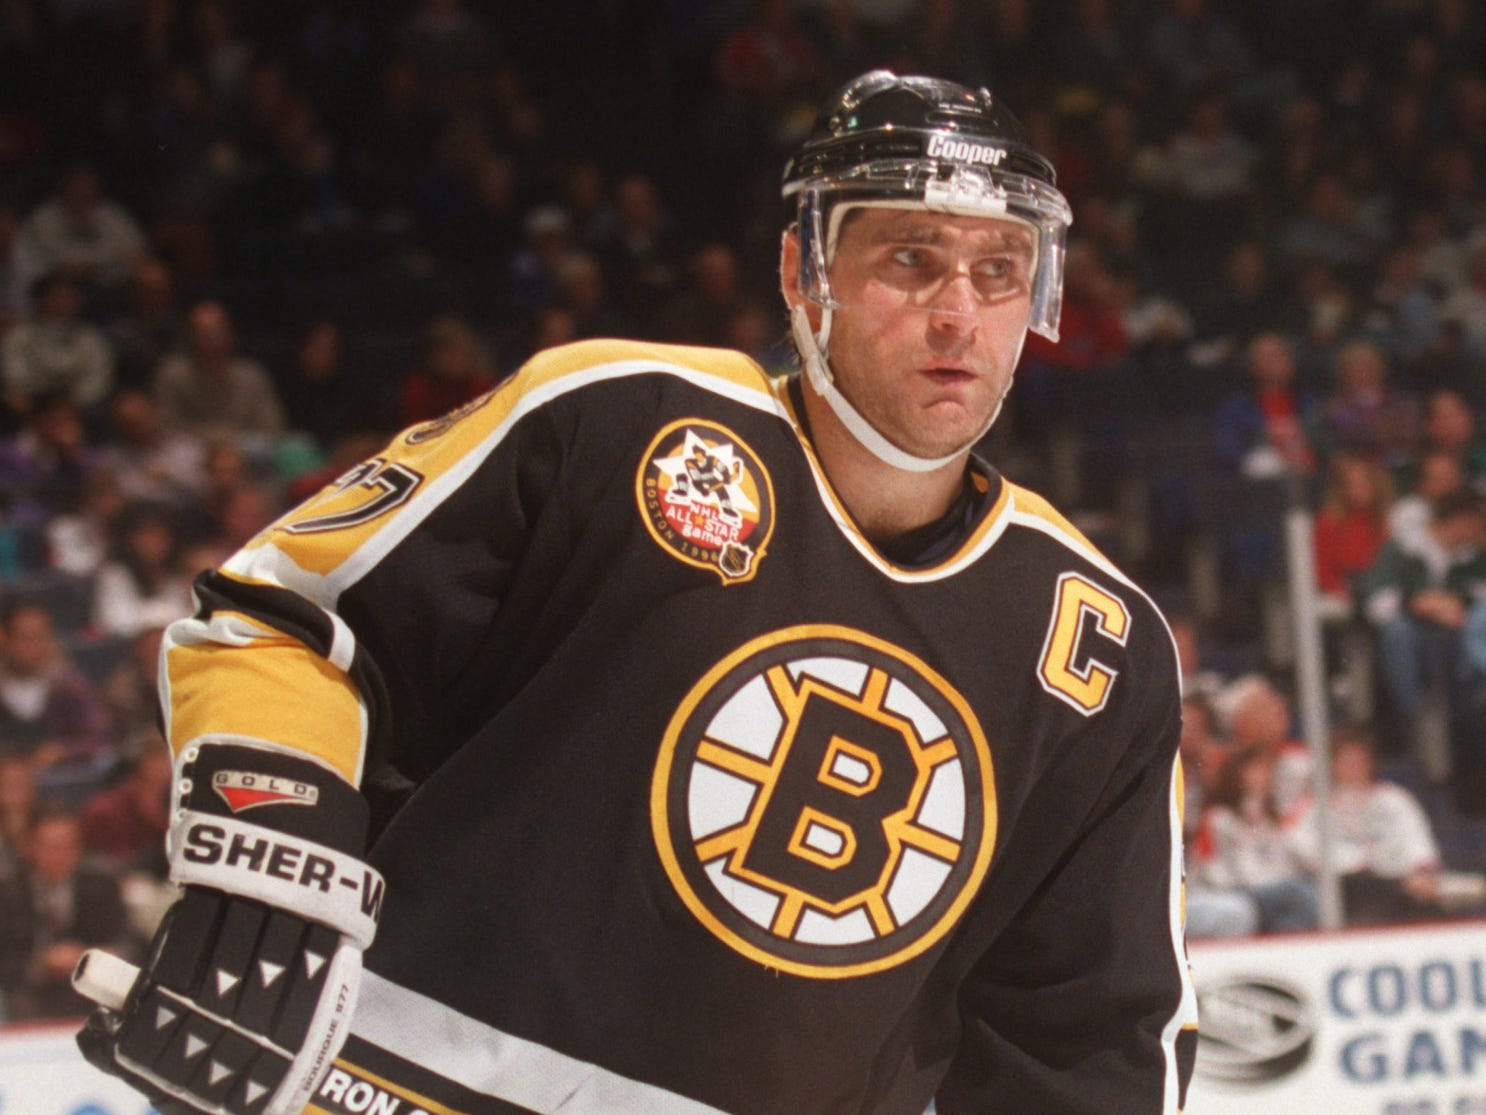 77. Ray Bourque (1987-2001). Also: Paul Coffey, Pierre Turgeon